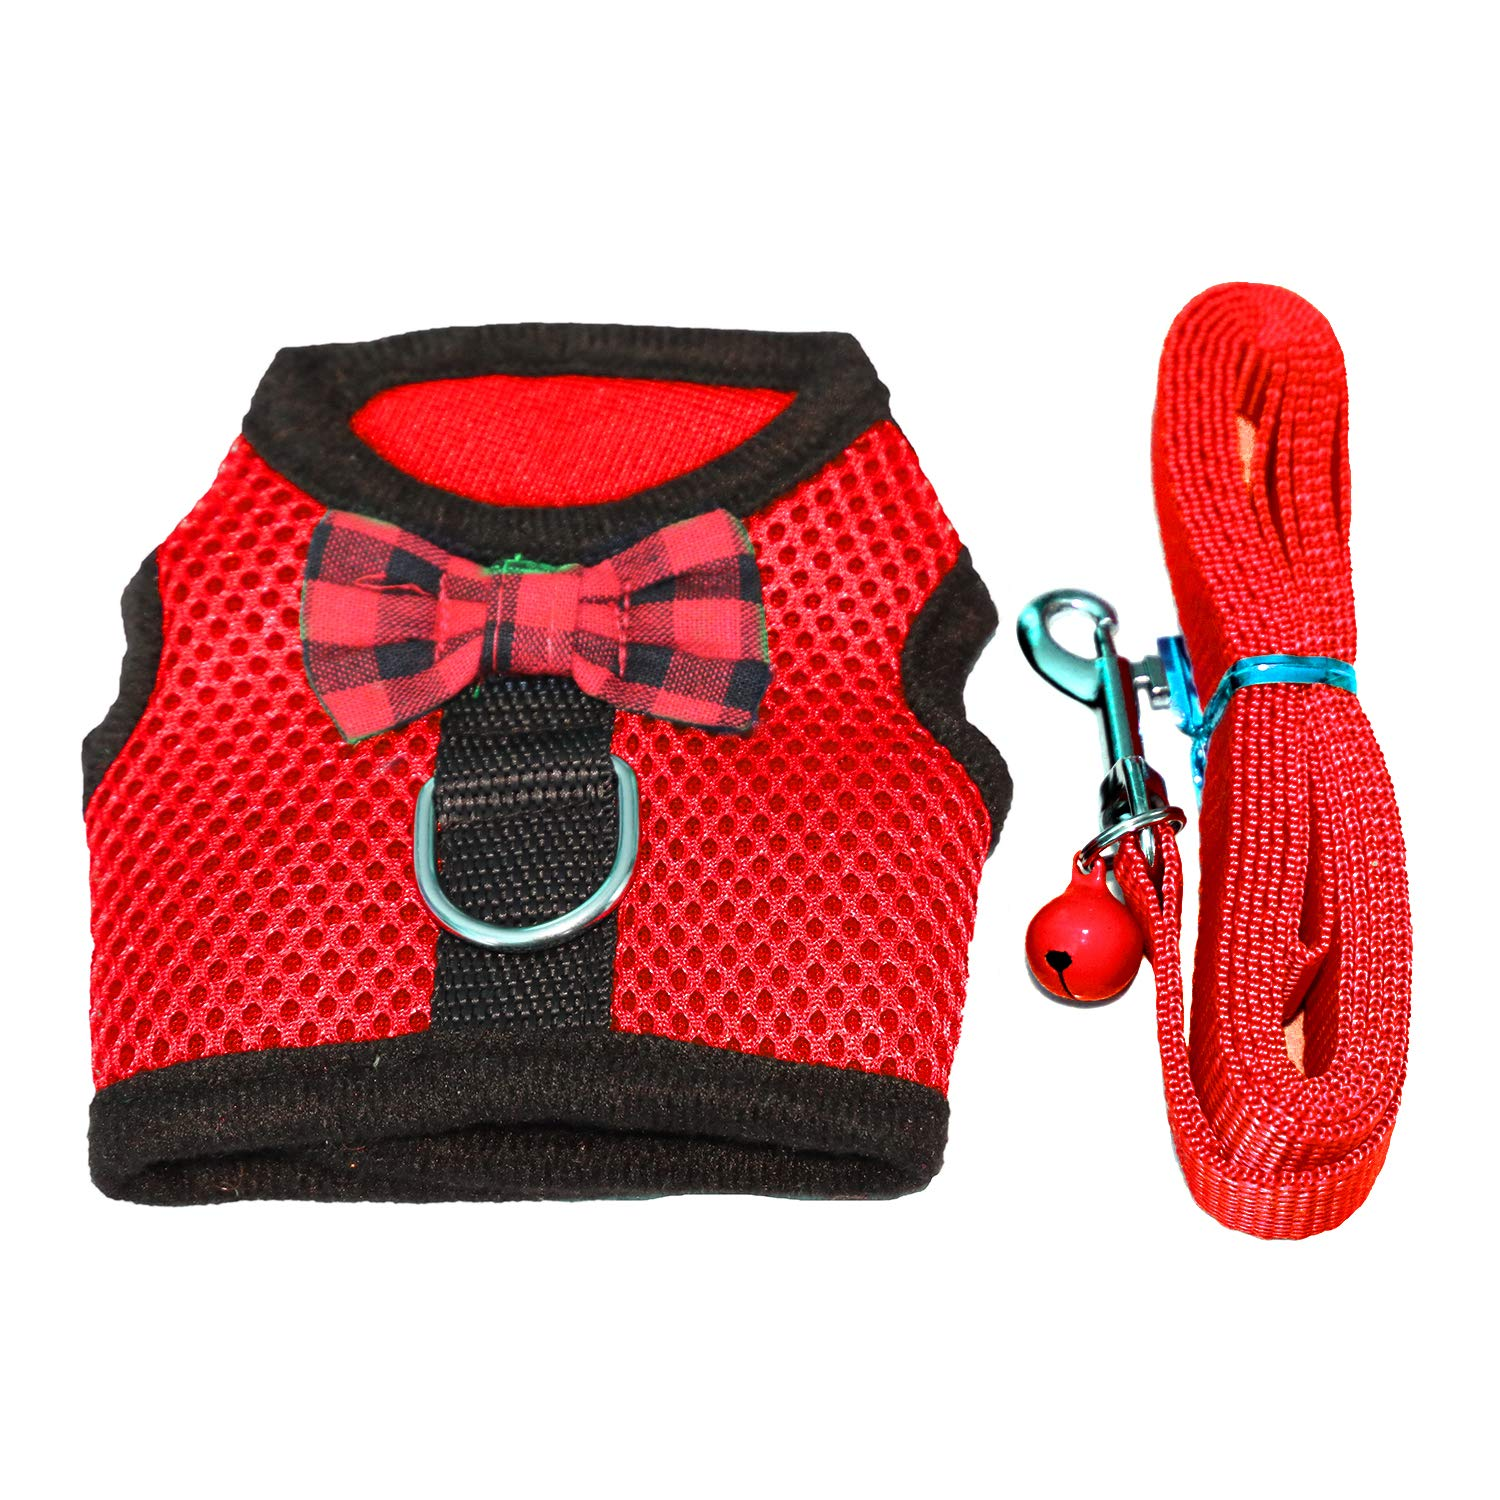 No Pull Comfort Padded Vest for Small Pet RYPET Small Animal Harness and Leash Soft Mesh Small Pet Harness with Safe Bell